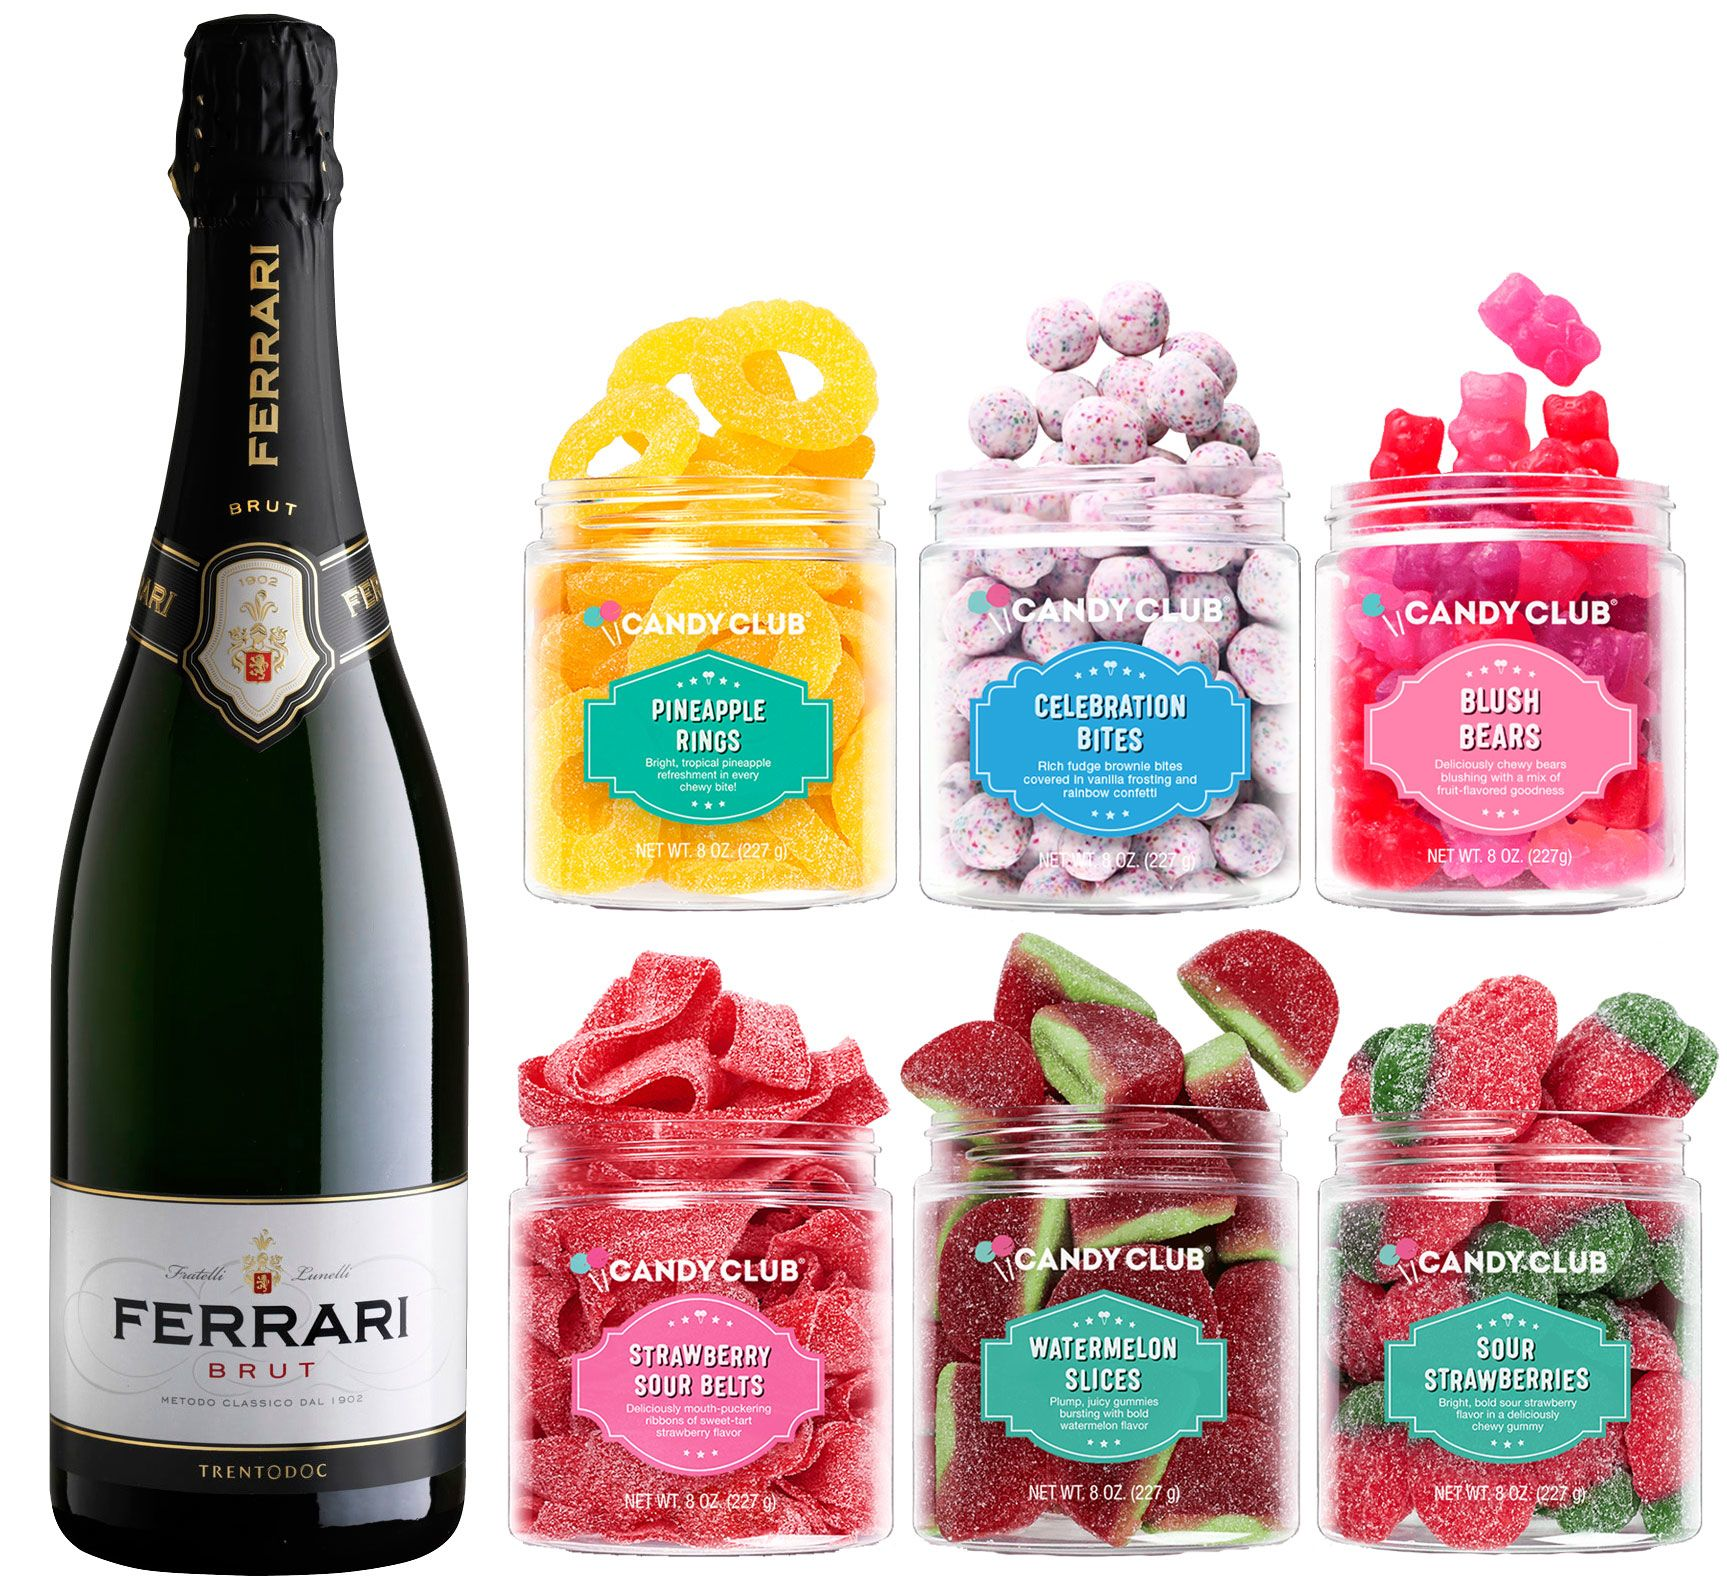 wine.com Ferrari Brut and Candy Club Gift Set  Gift Product Image